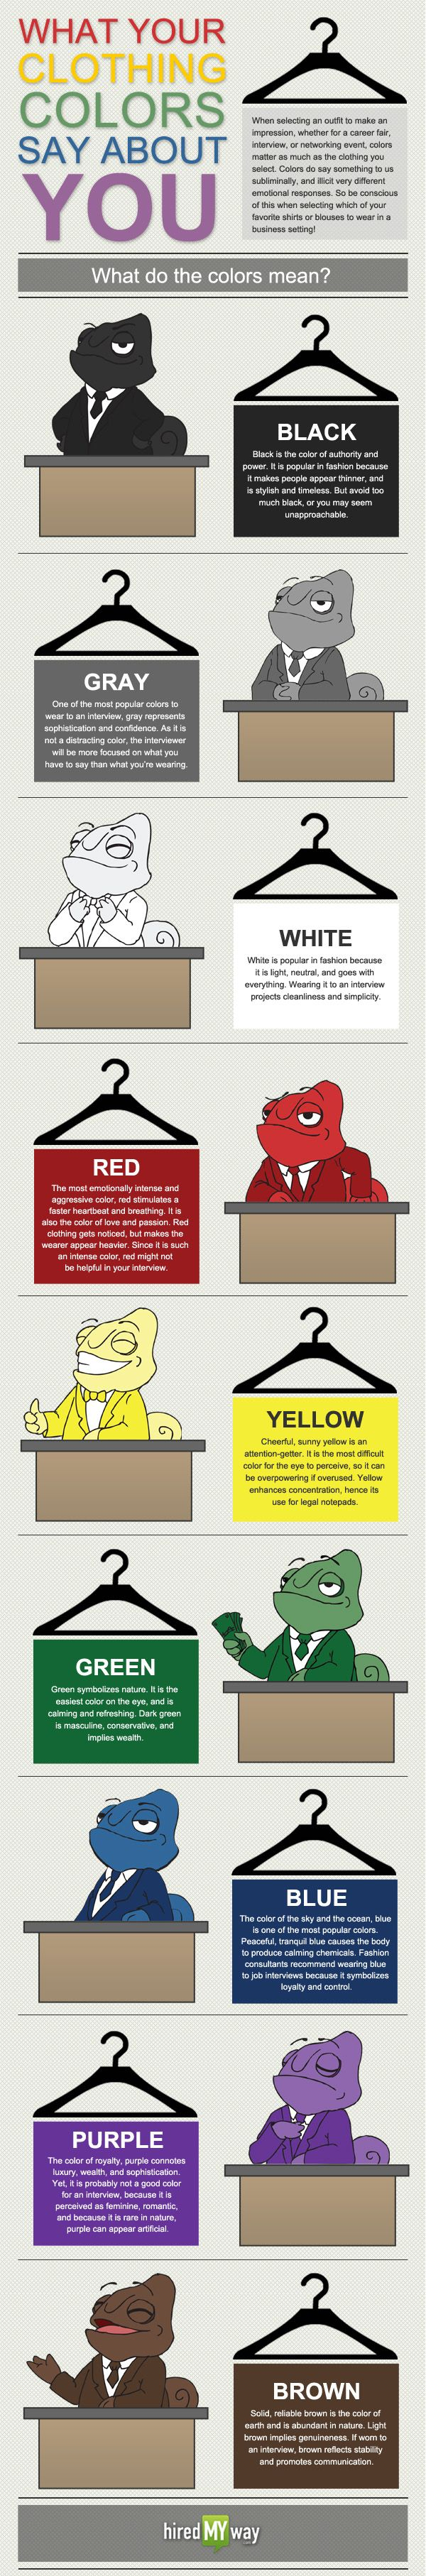 Dress accordingly....what colors to wear to an interview. I found this very interesting, maybe it'll come in handy someday.